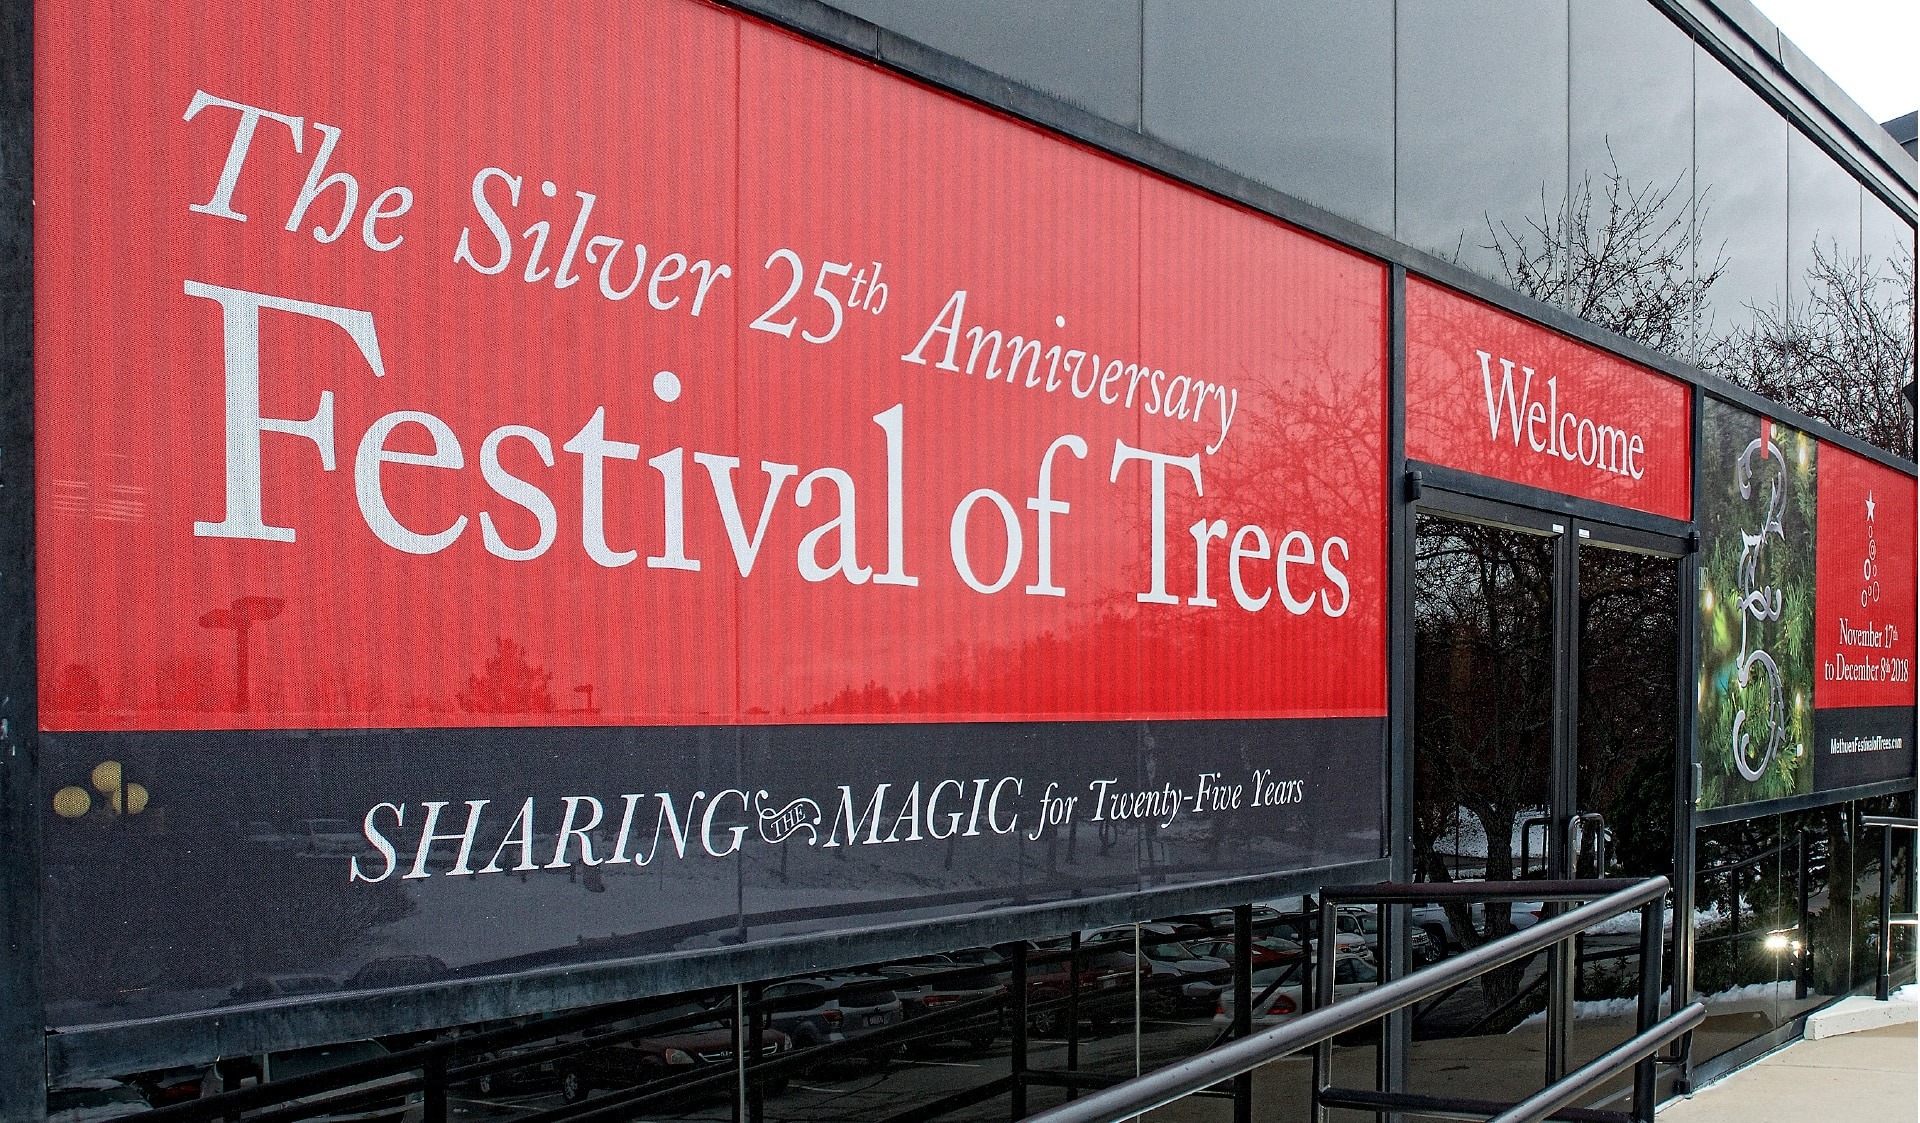 Billboard advertising promotes the Festival of Trees.